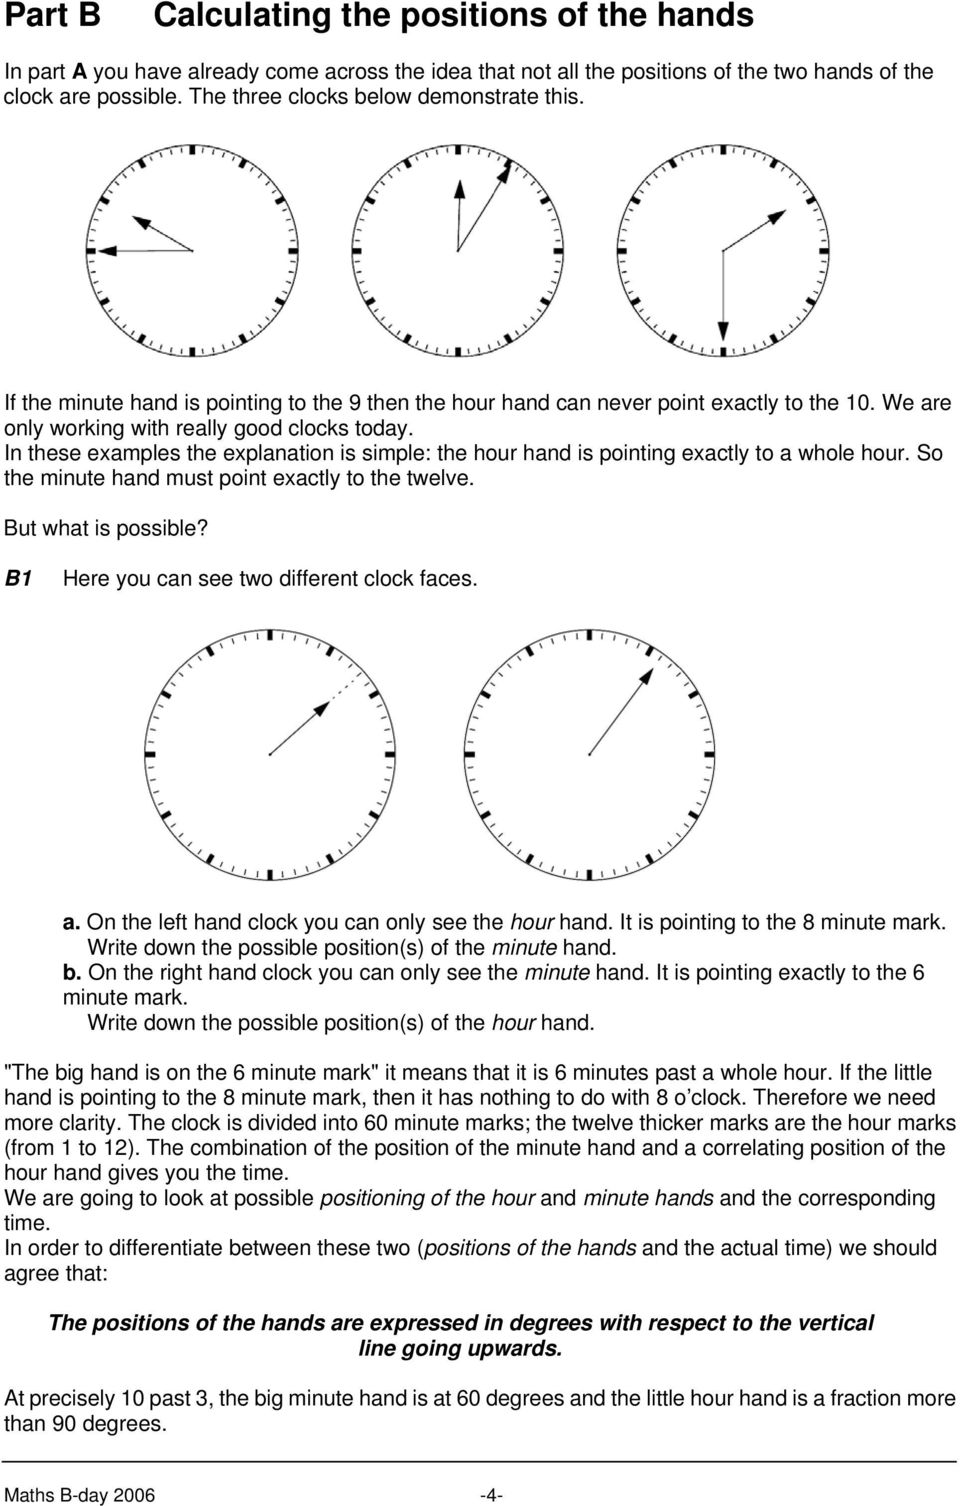 In these examples the explanation is simple: the hour hand is pointing exactly to a whole hour. So the minute hand must point exactly to the twelve. But what is possible?